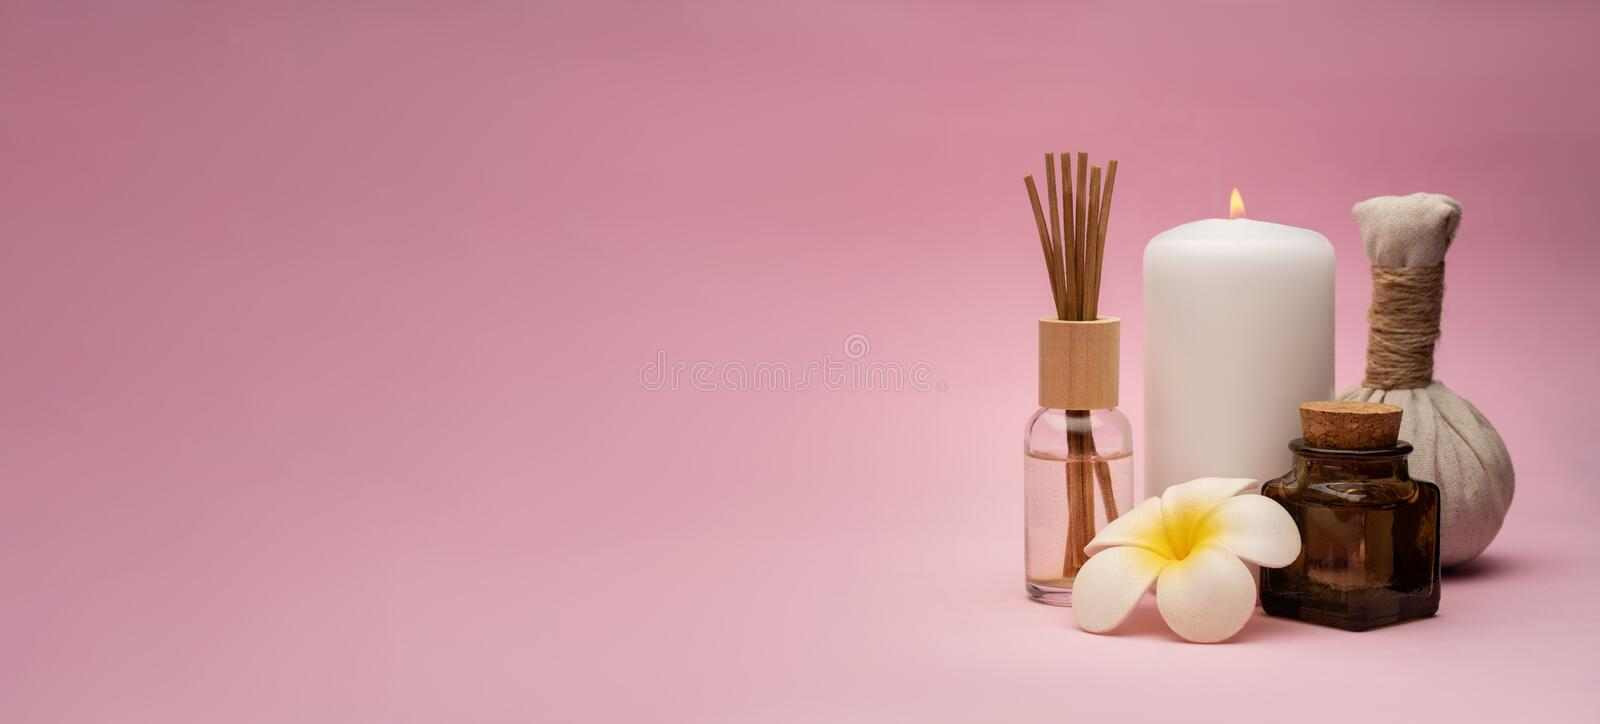 Beautiful and concise spa composition on pink background. royalty free stock photography